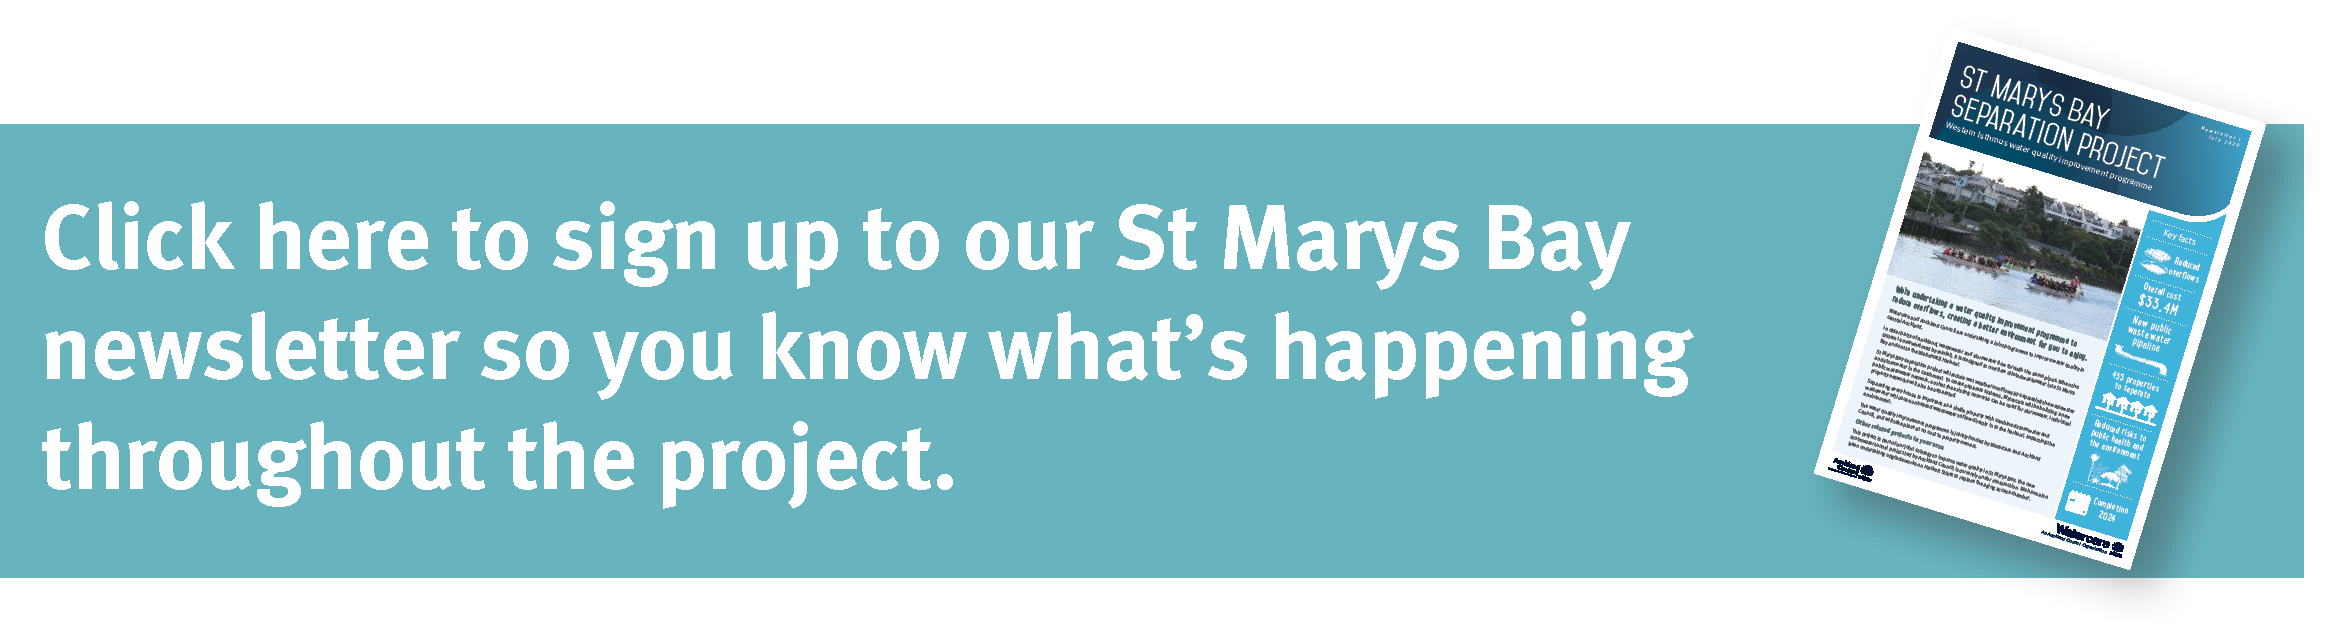 sign up for the St Marys Bay separation project newsletter